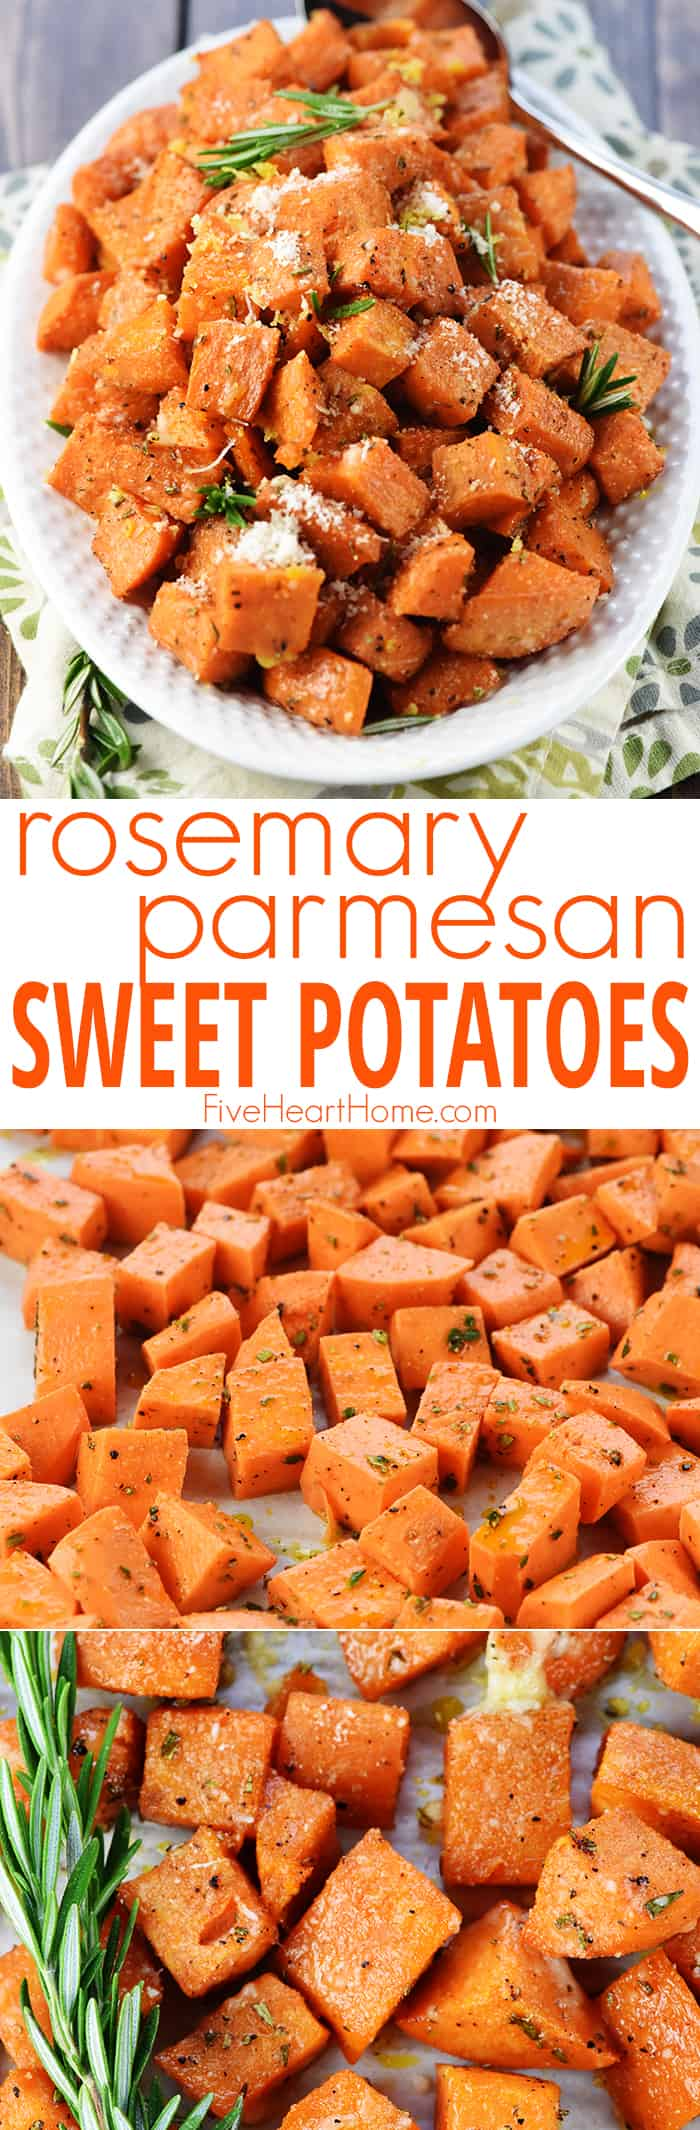 Rosemary Parmesan Roasted Sweet Potatoes ~ a simple, healthy, savory-sweet recipe that's the perfect side dish for a regular weeknight dinner or a special holiday menu! | FiveHeartHome.com